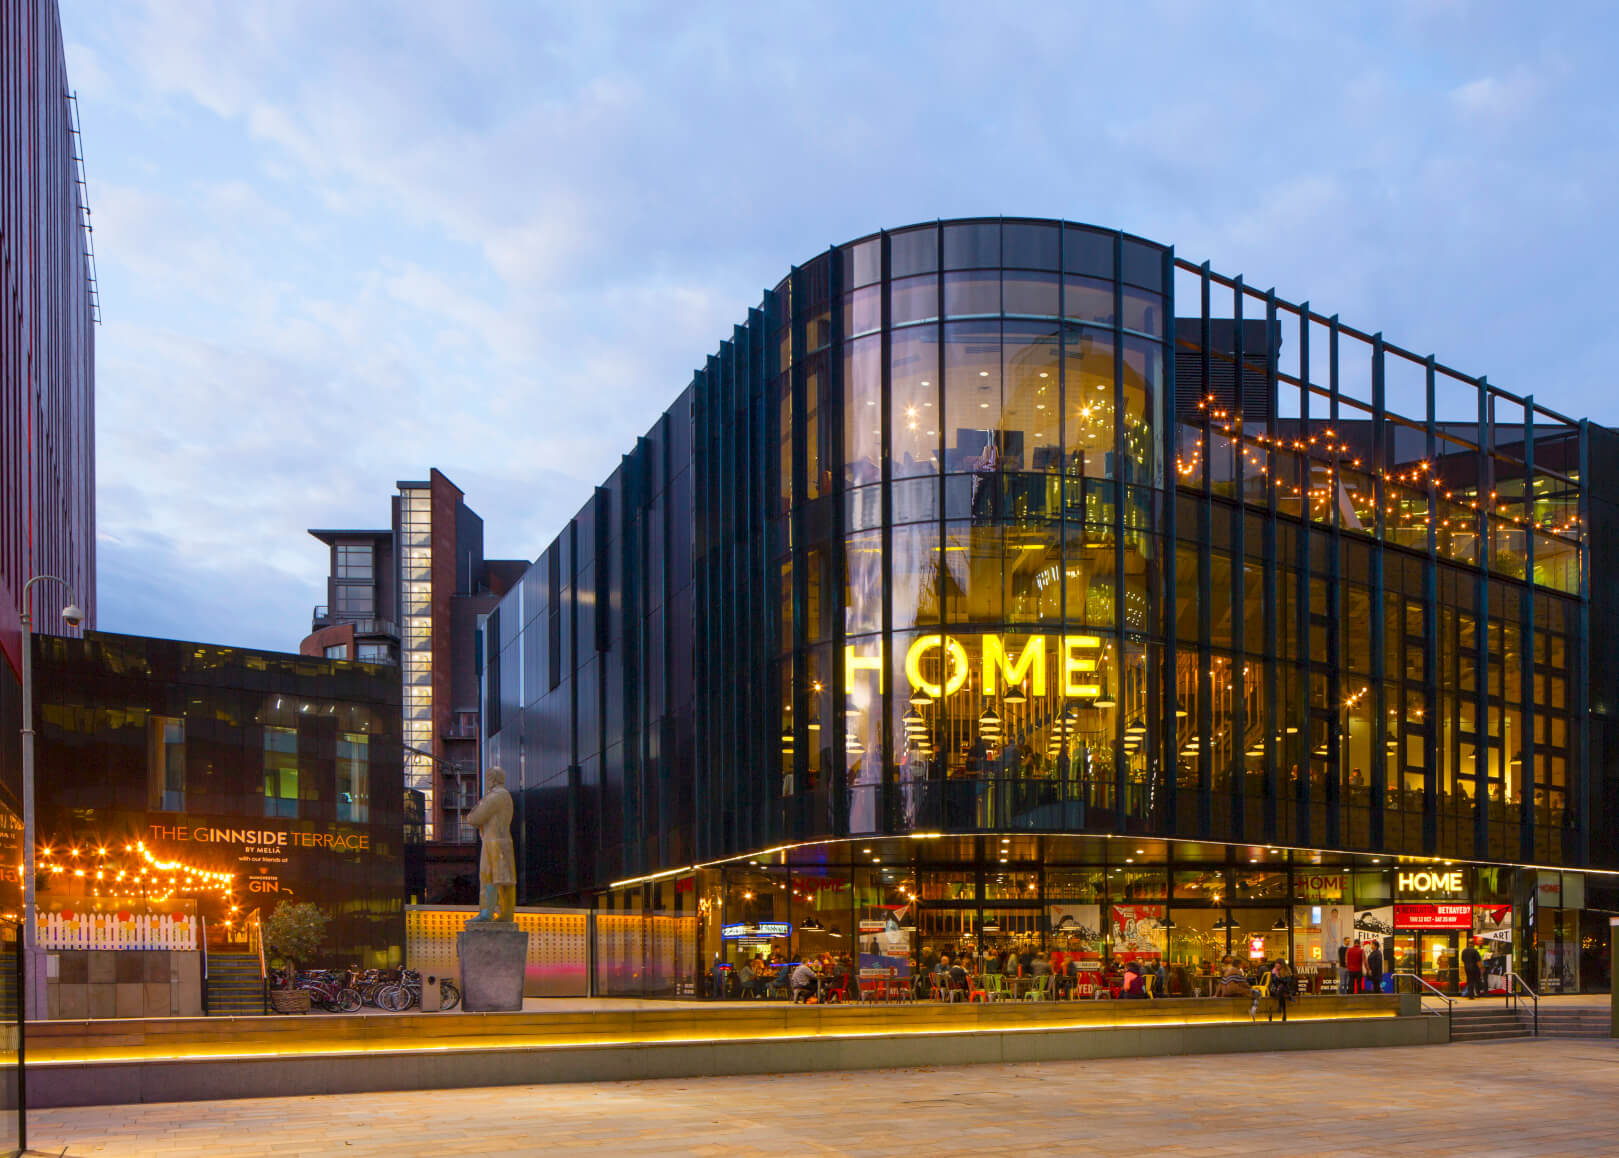 HOME - HOME Manchester commissioned Zanna Creative to produce its 5 Year Cross-Arts Talent Development Strategy, reporting to HOME's CEO.This work involved a UK-wide consultancy of leading arts and creative organisations, in-depth research into talent development across the North West and recommendations for implementation by its Board of Directors.